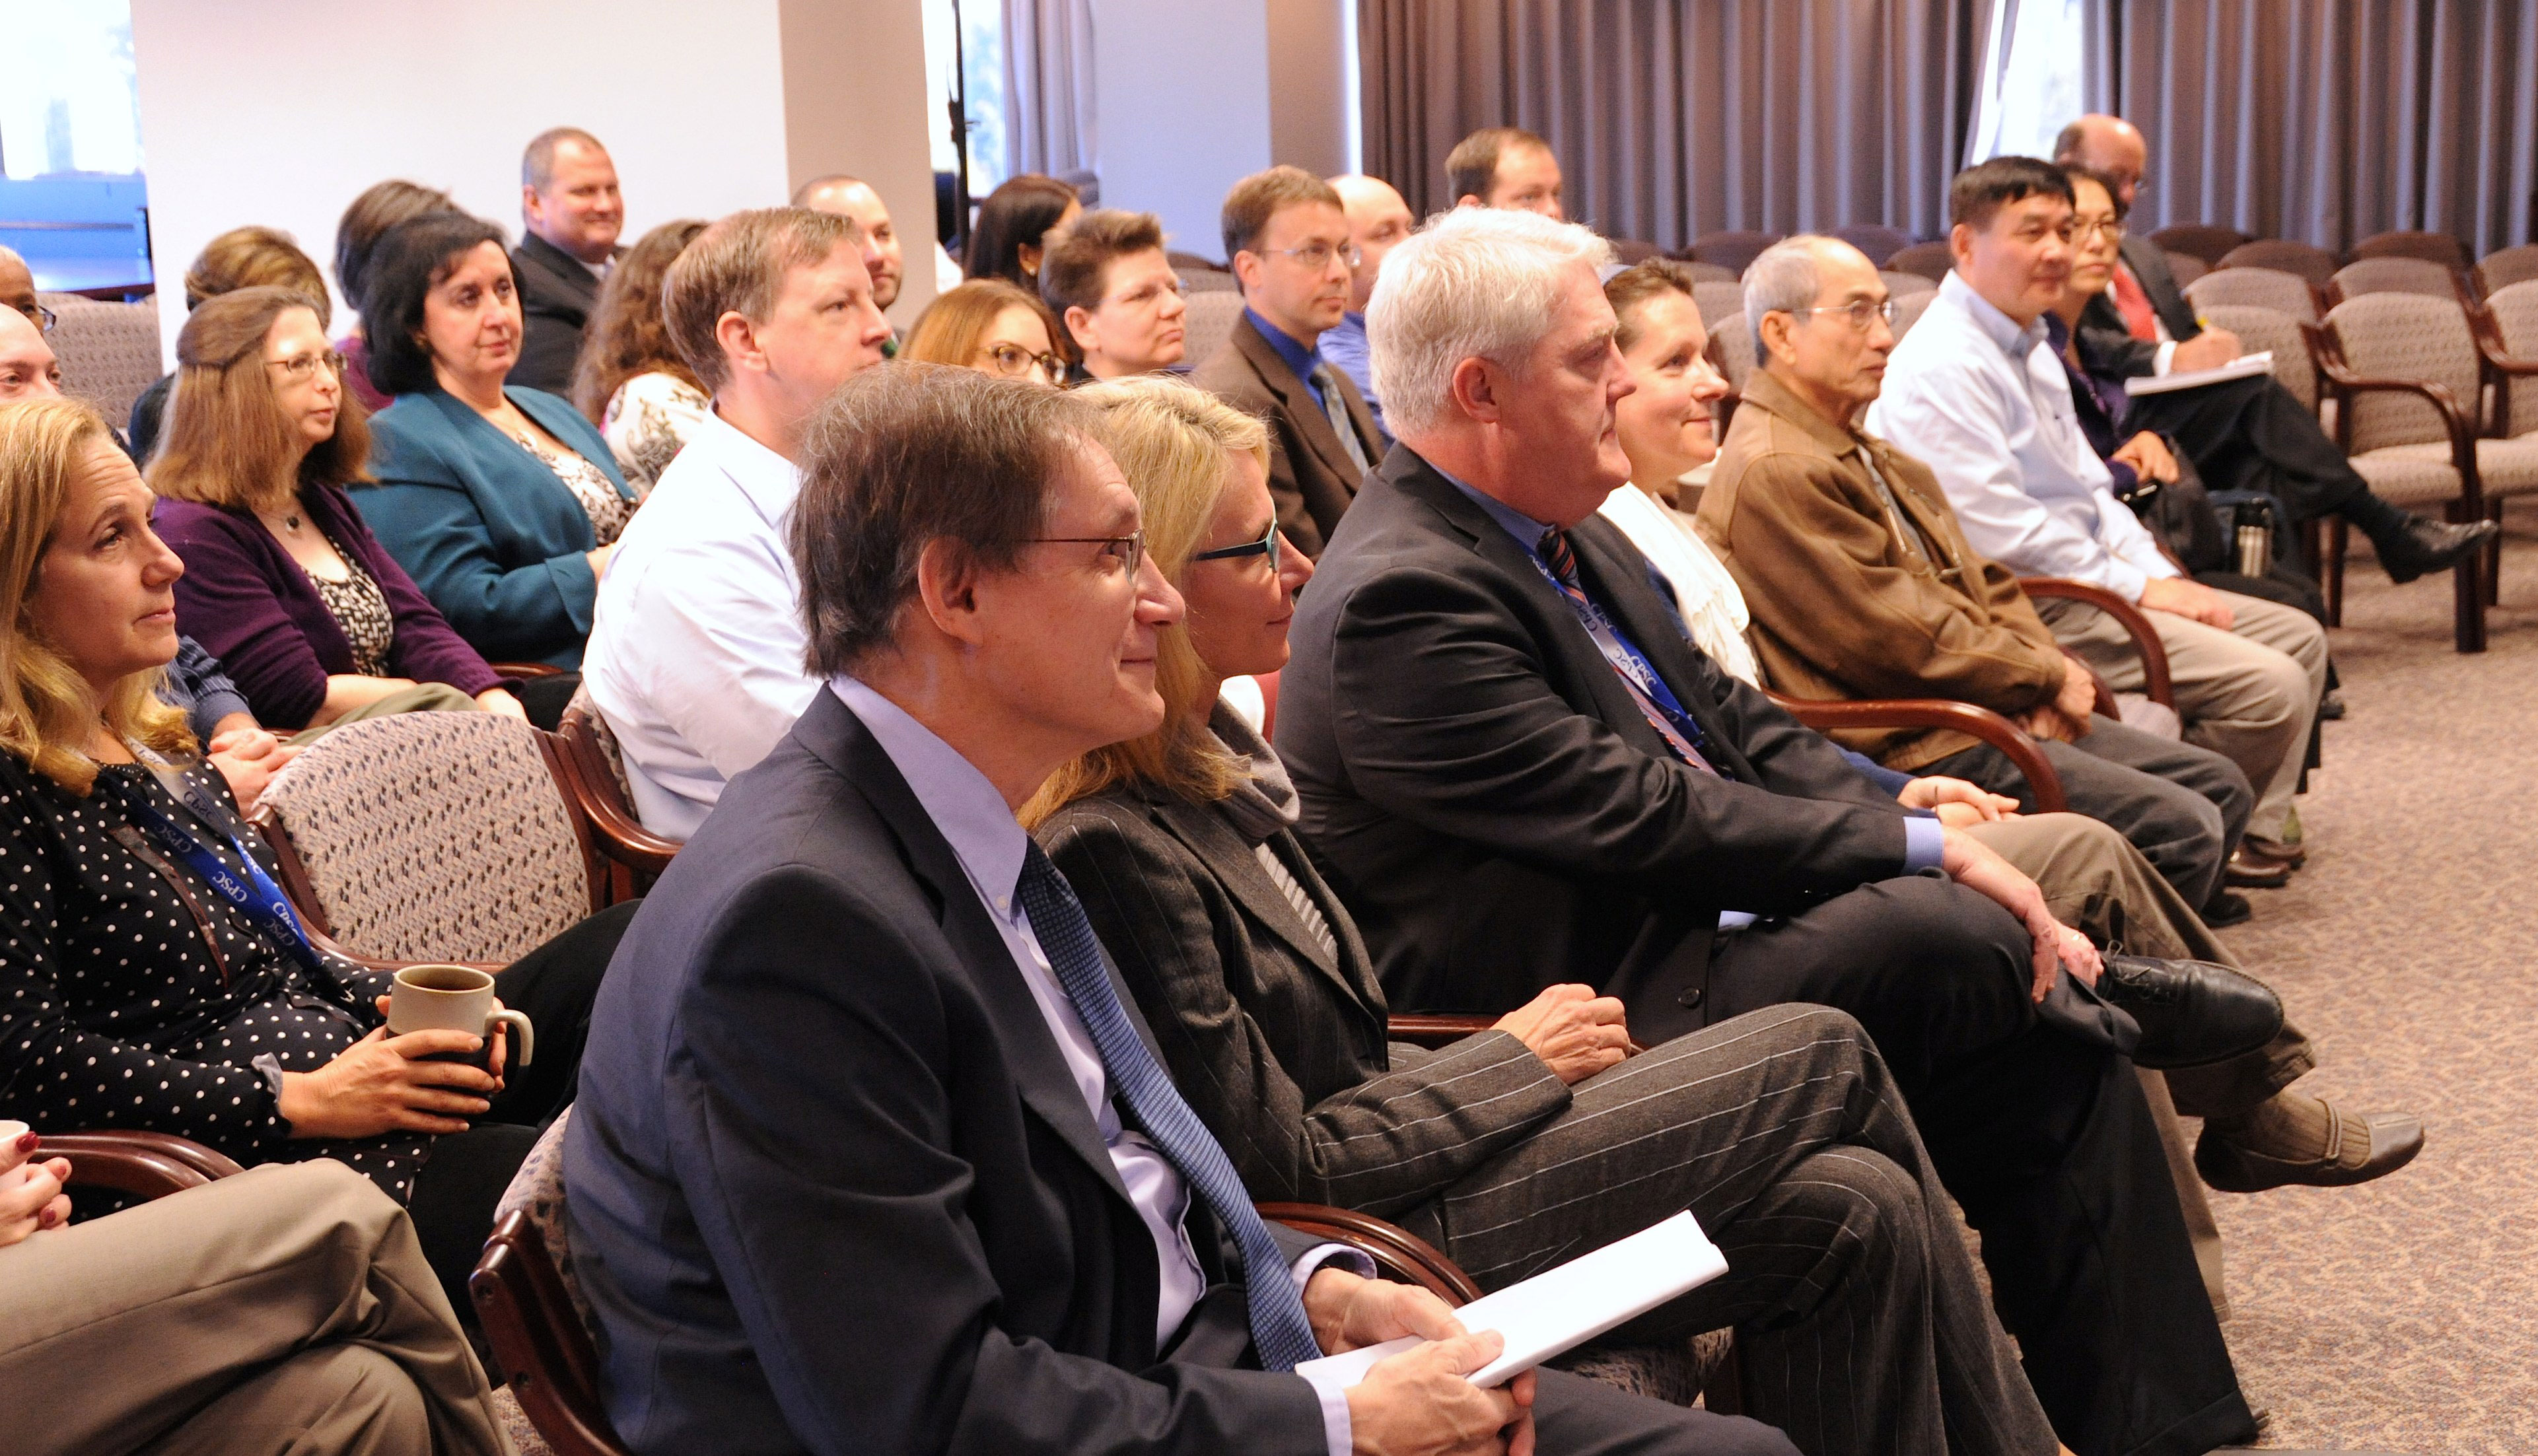 Commissioner Adler, Commissioner Robinson and other members of the audience listen to the winners present their apps.